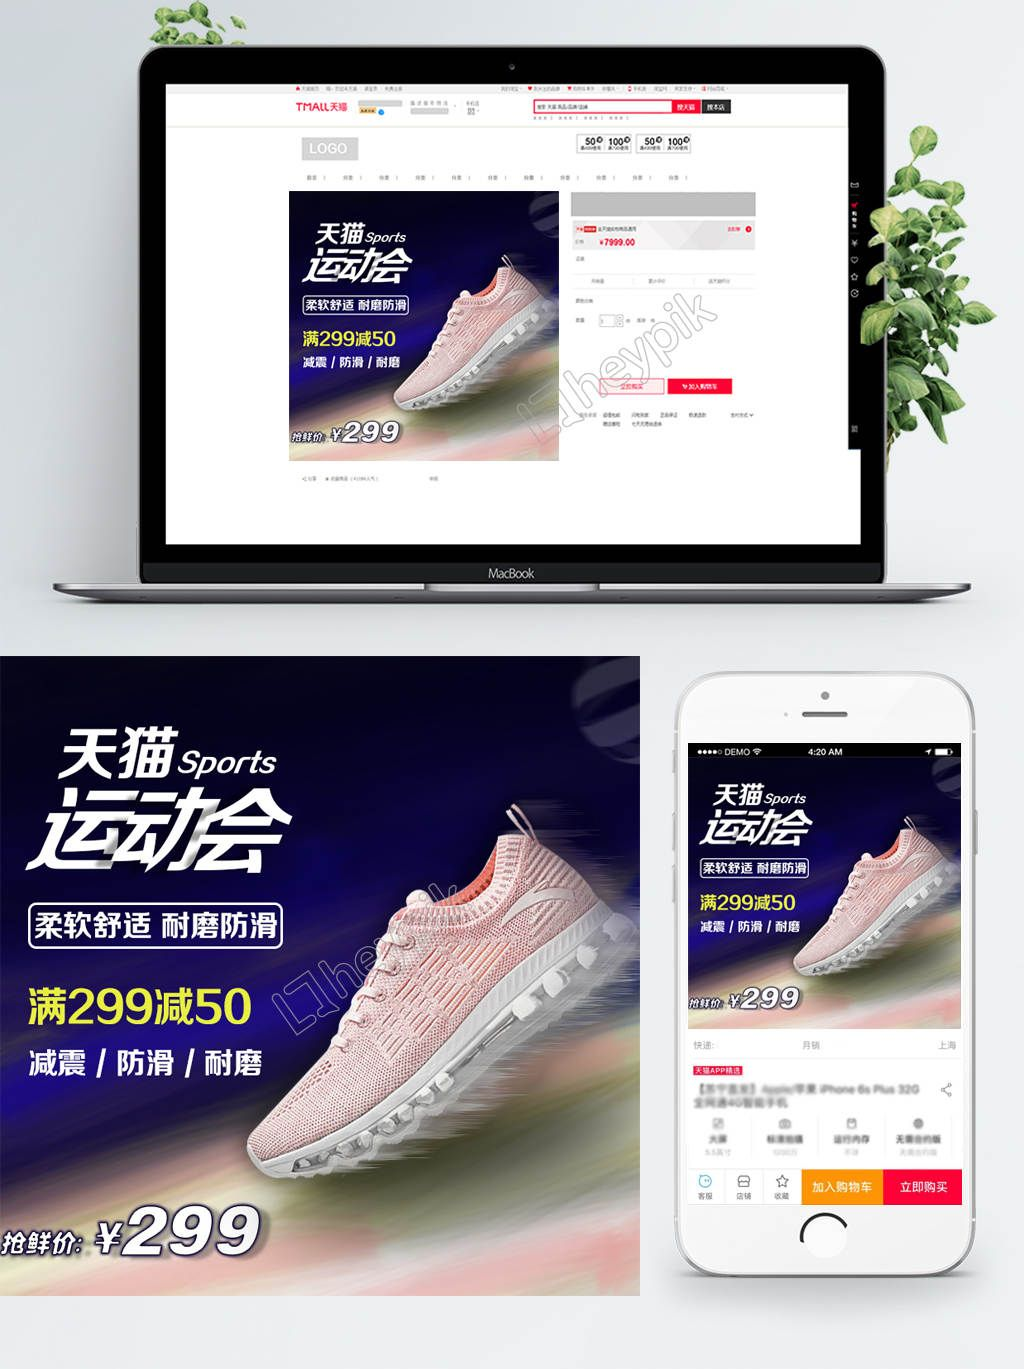 Download Promotion Sports Season Women Shoes Sports Shoes Sports Wind Main Graph Train Png And Mockup Sports Shoes Sport Shoes Winter Running Shoes